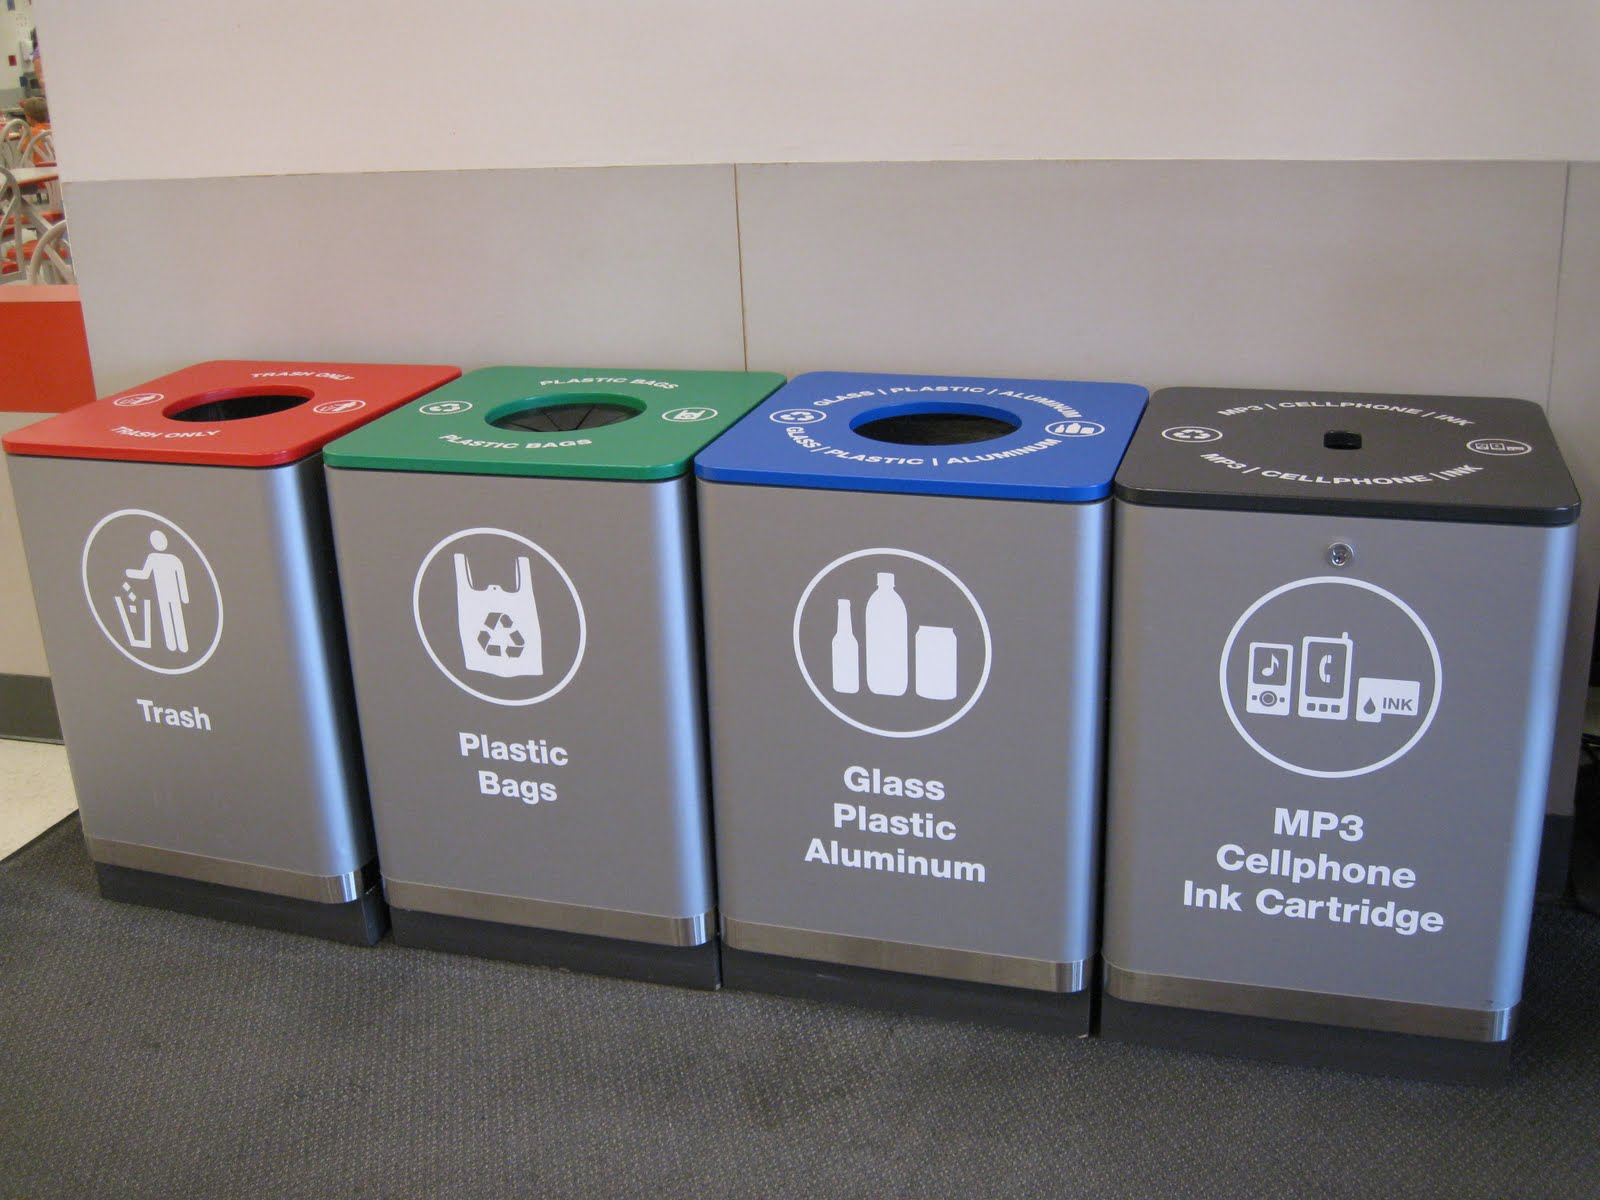 Recycle containers for home use - Recycle Bins For Home Recycle Containers For Home Stacking Recycle Bins For Home Stacking Recycle